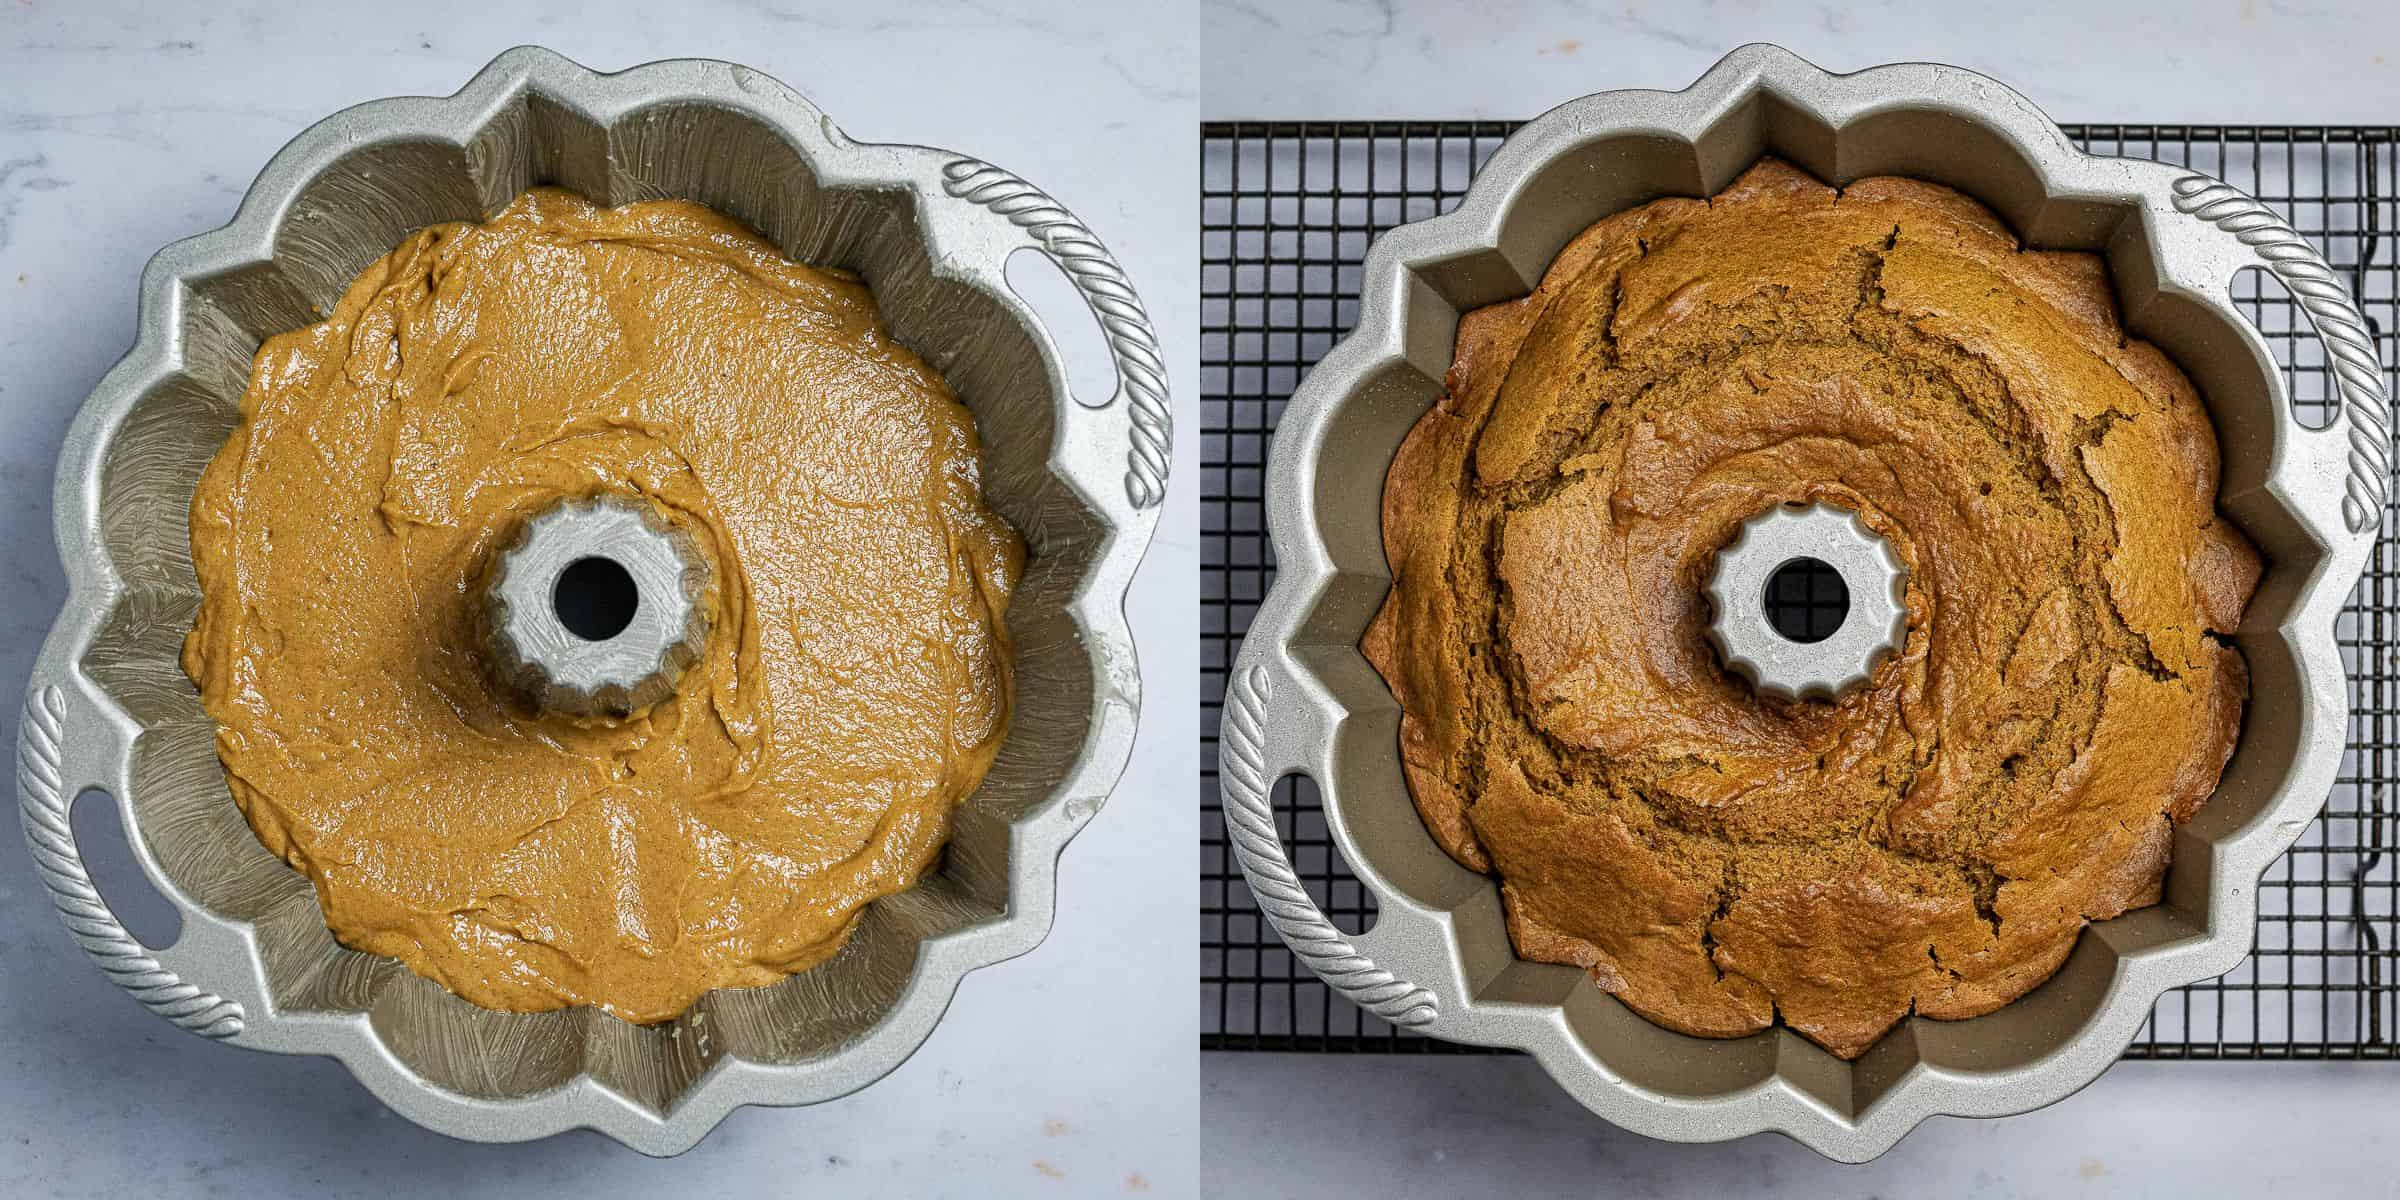 Step 2, a two image collage of the cake before and after baking.